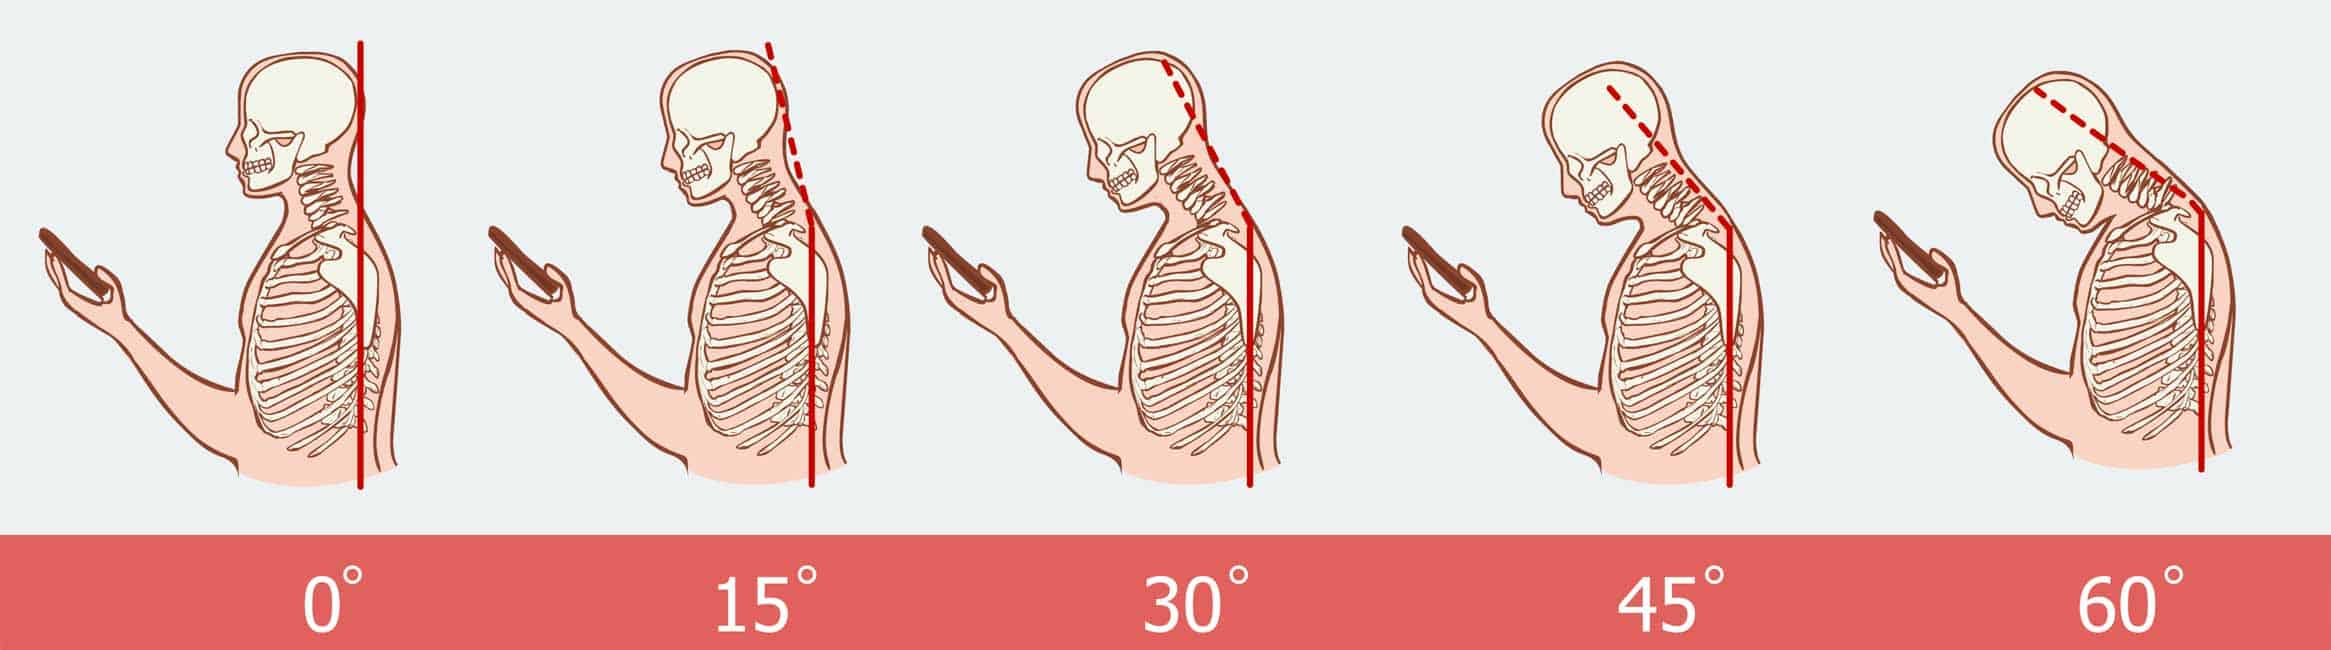 Tech Neck Diagram Physiotherapist-in-Sydney-that-can-help-with-neck-and-shoulder-pain-caused-by-too-much-smartphone-use